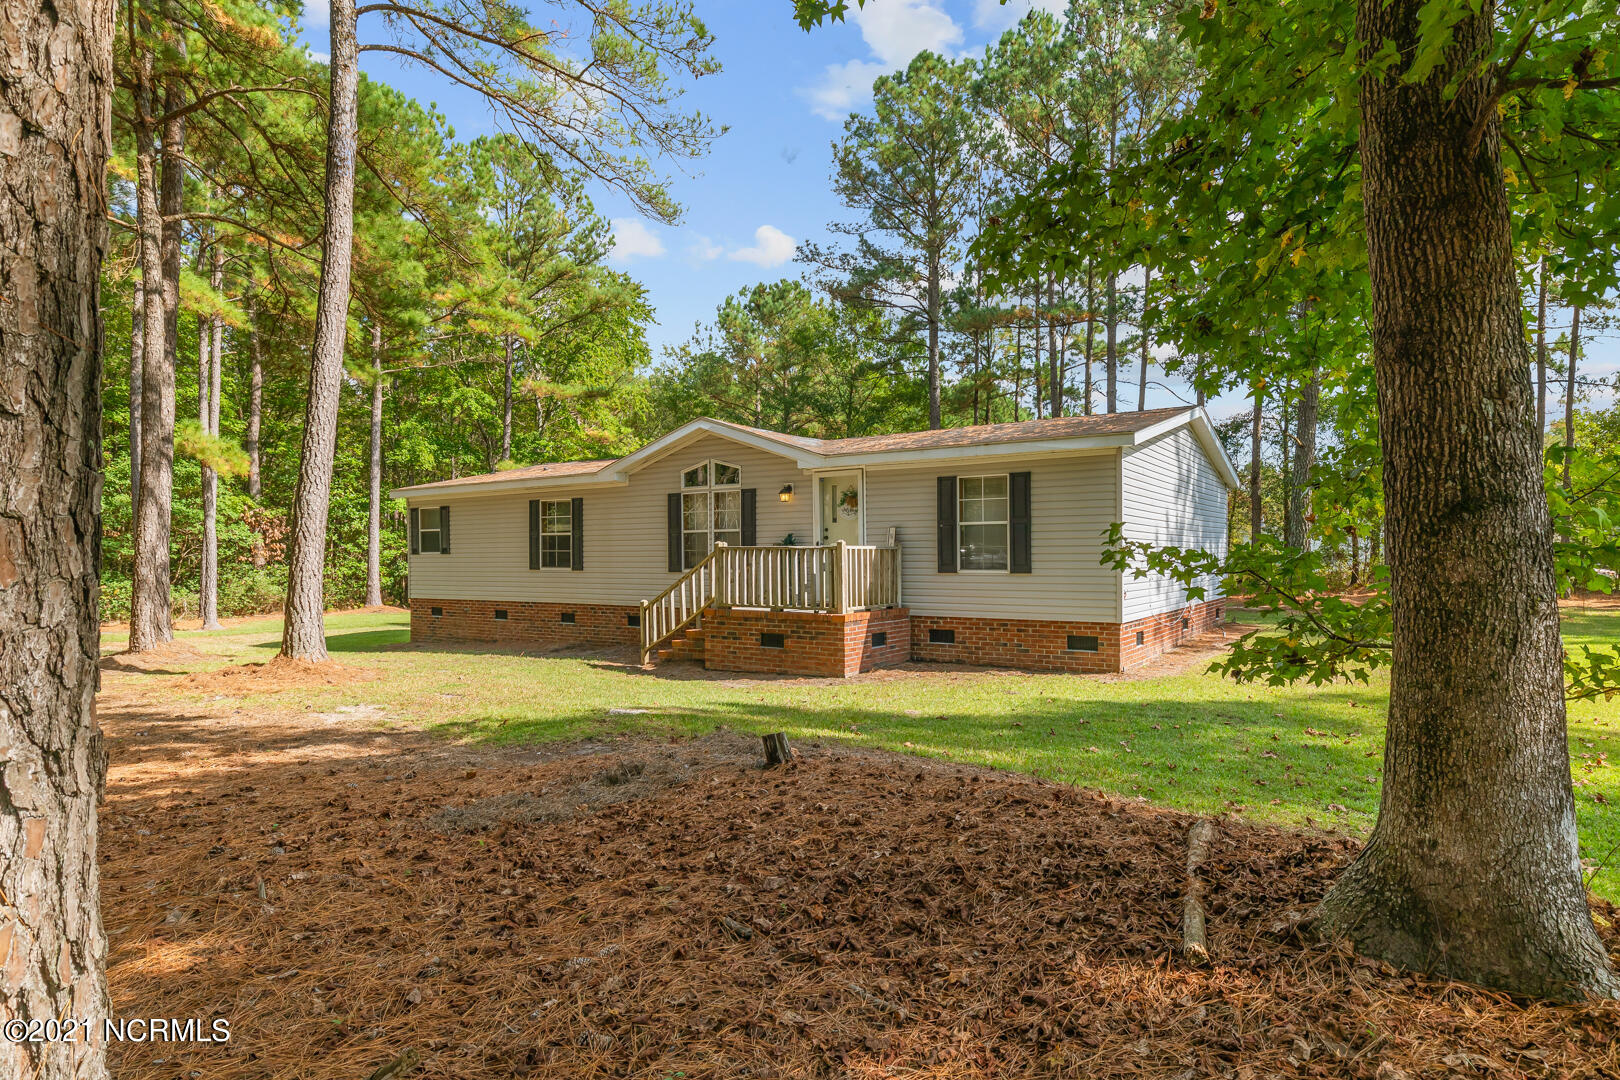 The gem has just hit the market. This is a manufactured home on a permanent brick foundation tucked away on 1 acre of land.  This home has 3 bedrooms and two full baths.  As you enter the side entrance you will find the laundry room which leads into kitchen with a nice pantry.  The master bedroom has a nice bonus sitting area off to the side which could be used for many things, baby crib, craft space, reading area, etc.  This home is off of the main roads, so you should have very little traffic and lots of privacy.  You must see this to truly appreciate all it has to offer.